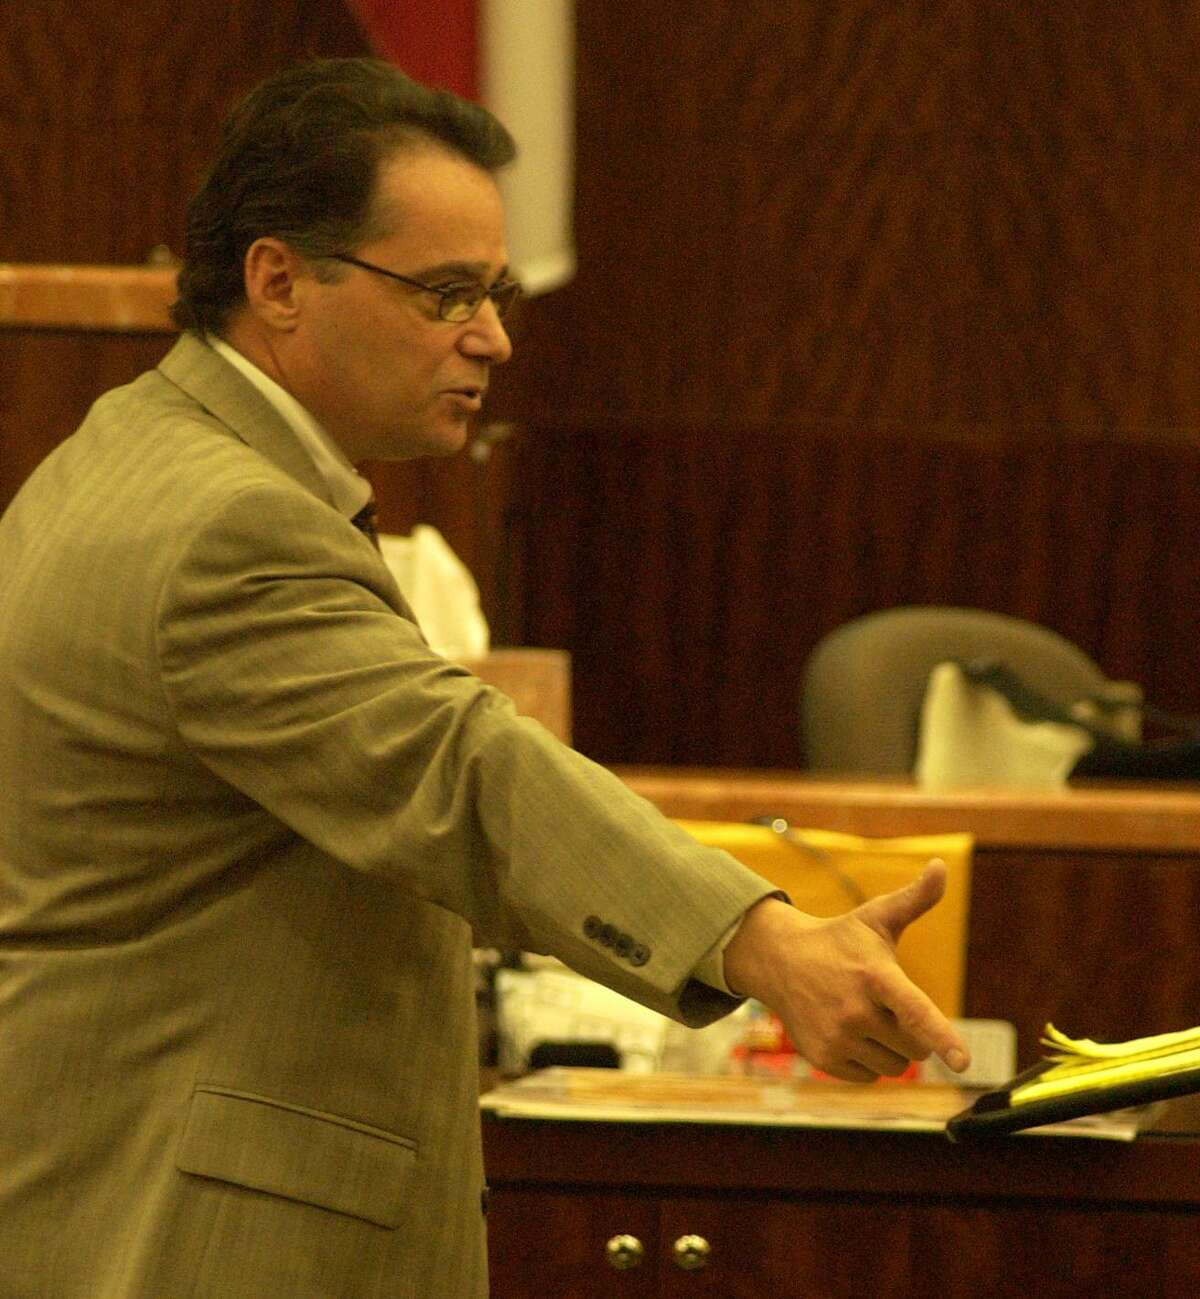 In this 2005 photo, Harris County prosecutor Dan Rizzo gives his closing arguments in the capital murder trial of Alfred Dewayne Brown, the man accused of killing Houston police officer Charles Clark during the robbery of a southeast side check-cashing store in 2003. Photo by Carlos Antonio Rios Houston Chronicle